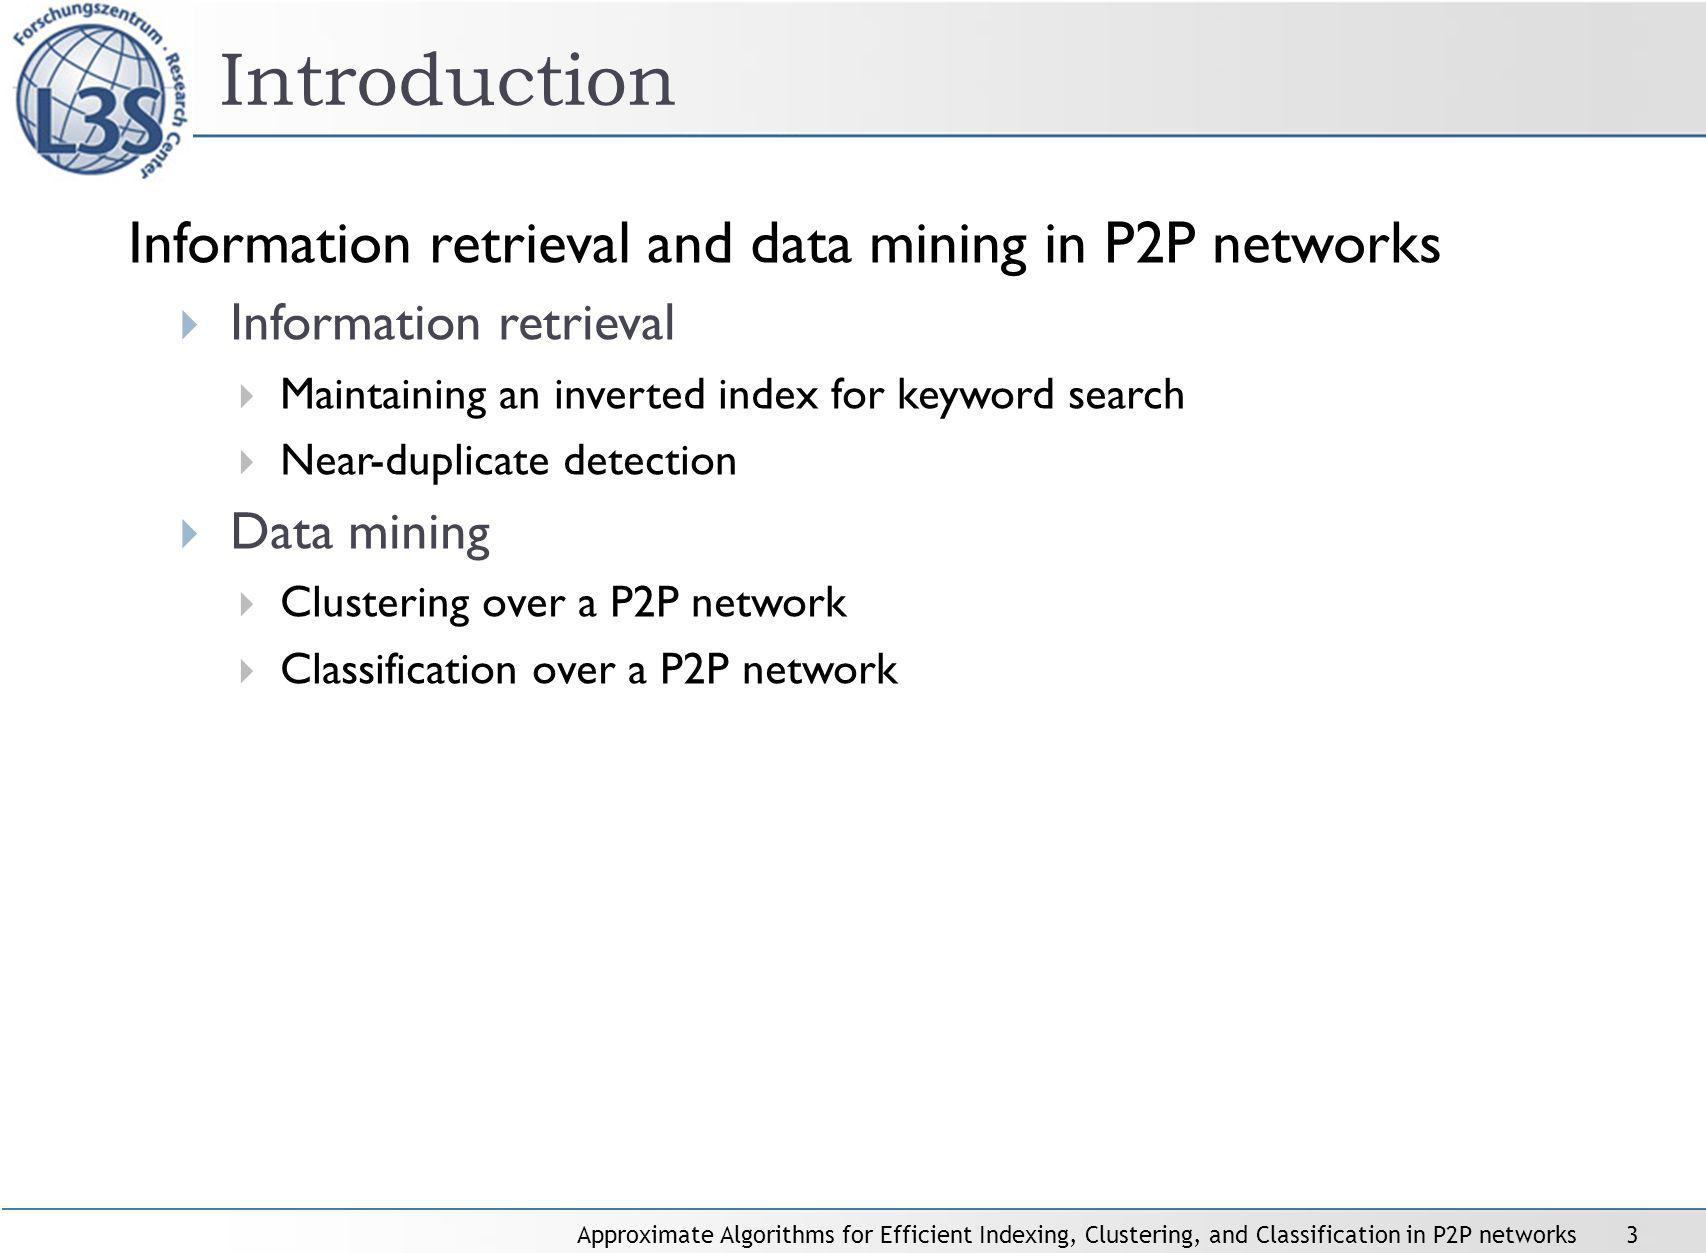 Approximate Algorithms for Efficient Indexing, Clustering, and Classification in P2P networks3 Information retrieval and data mining in P2P networks Information retrieval Maintaining an inverted index for keyword search Near-duplicate detection Data mining Clustering over a P2P network Classification over a P2P network Introduction